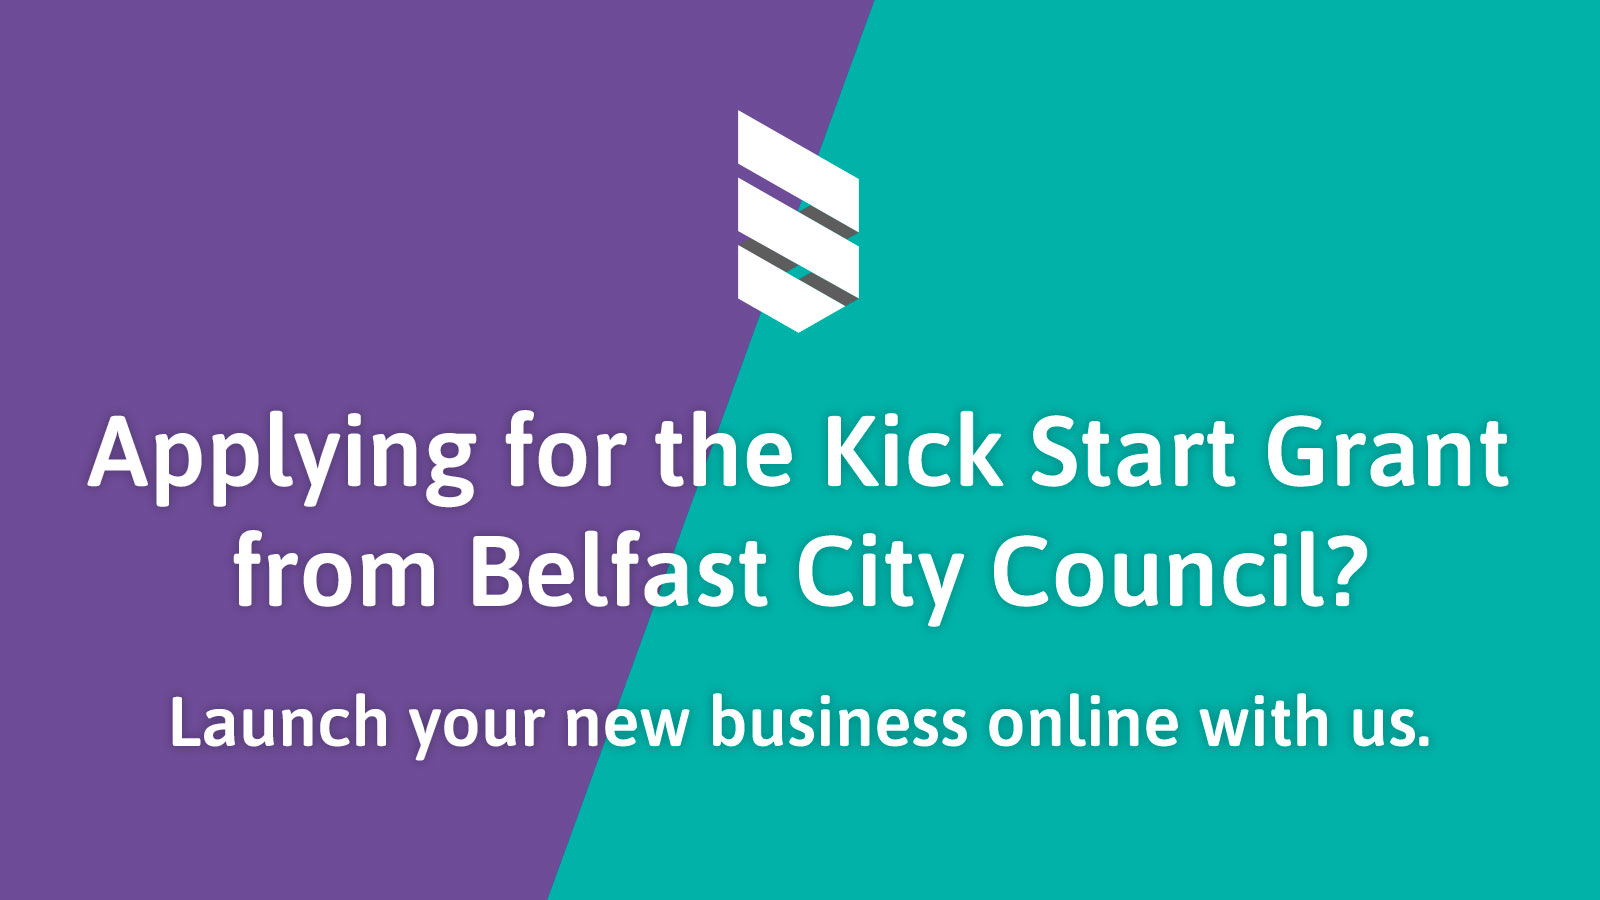 Belfast City Council Kick Start for Start Ups in Belfast Northern Ireland - Element seven